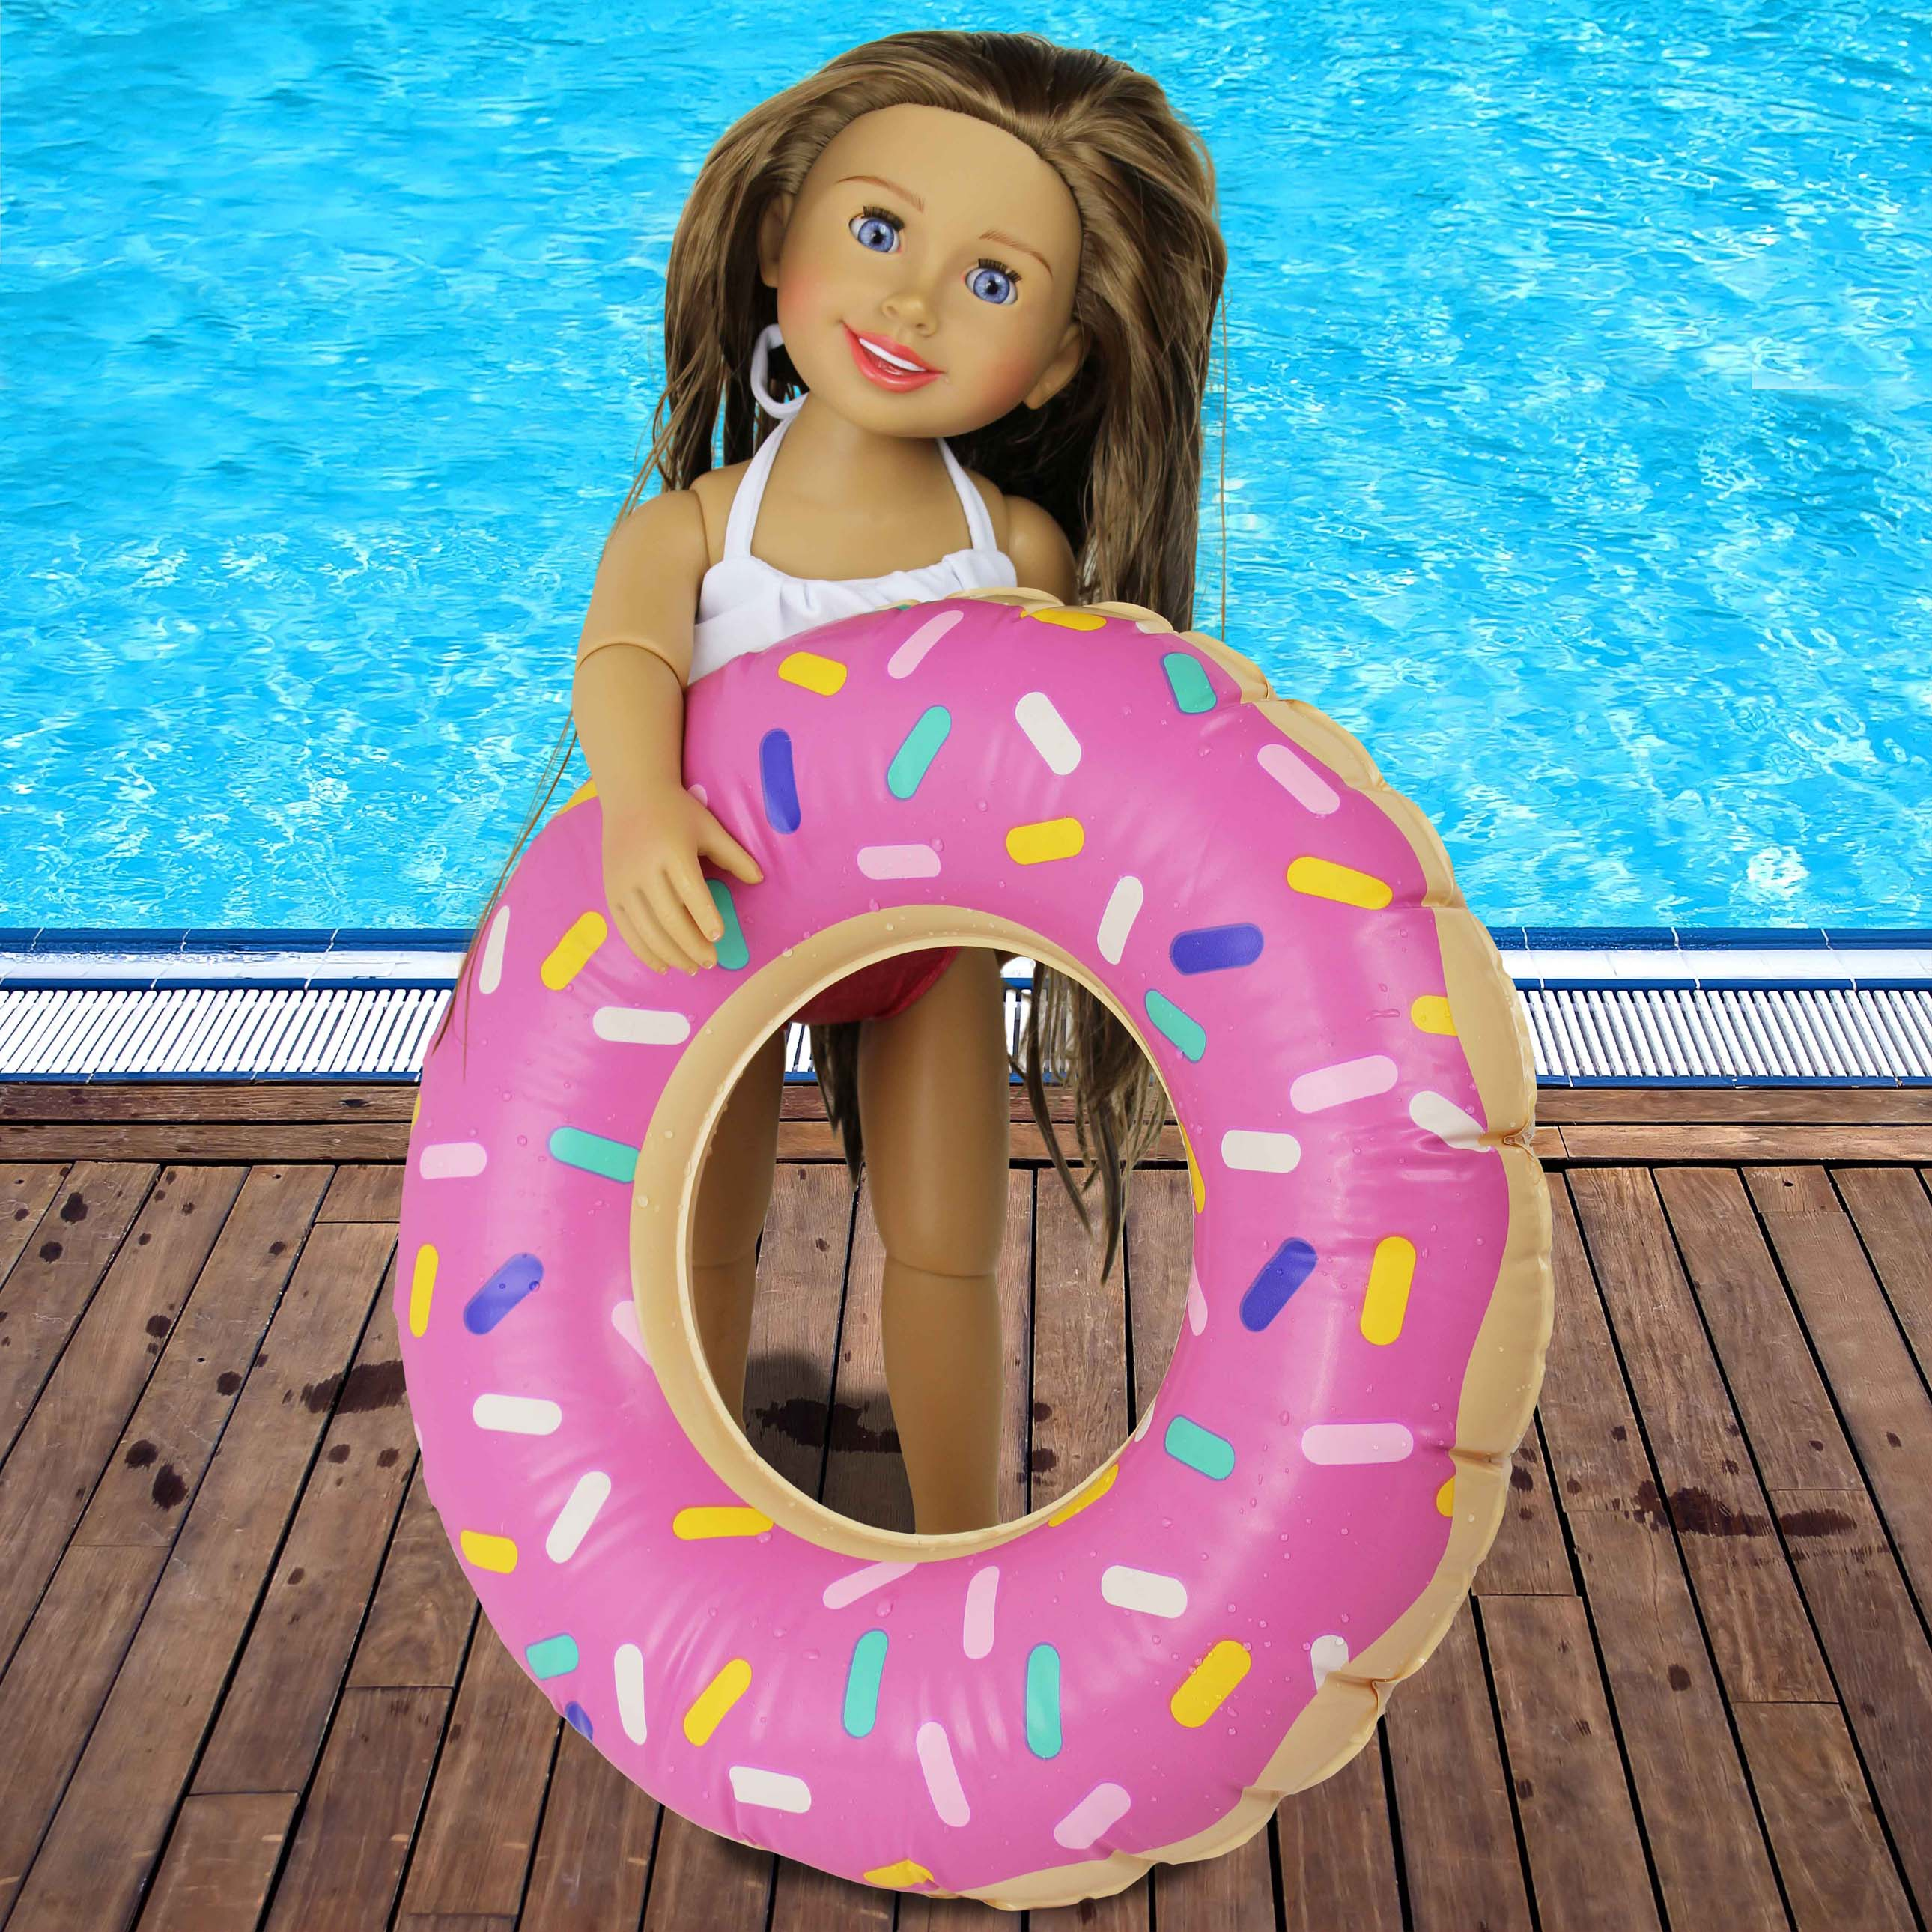 Dollfriend® Inner Tube Pool Float